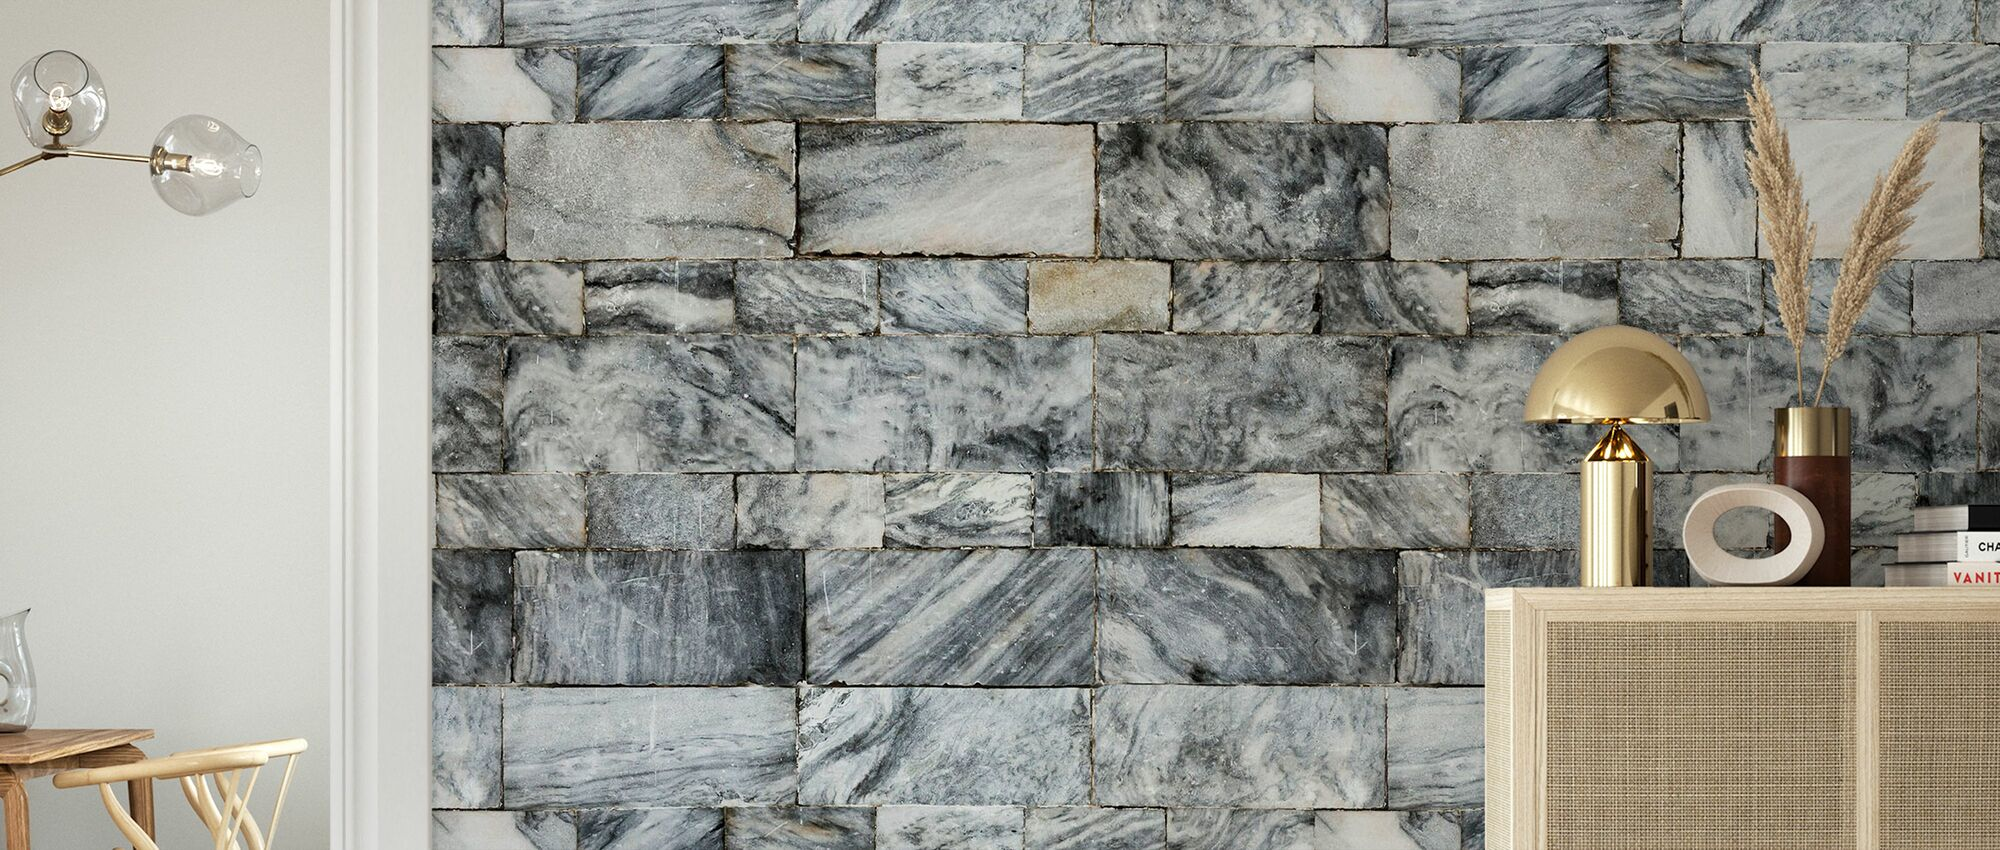 Marble Stone Wall - Wallpaper - Living Room